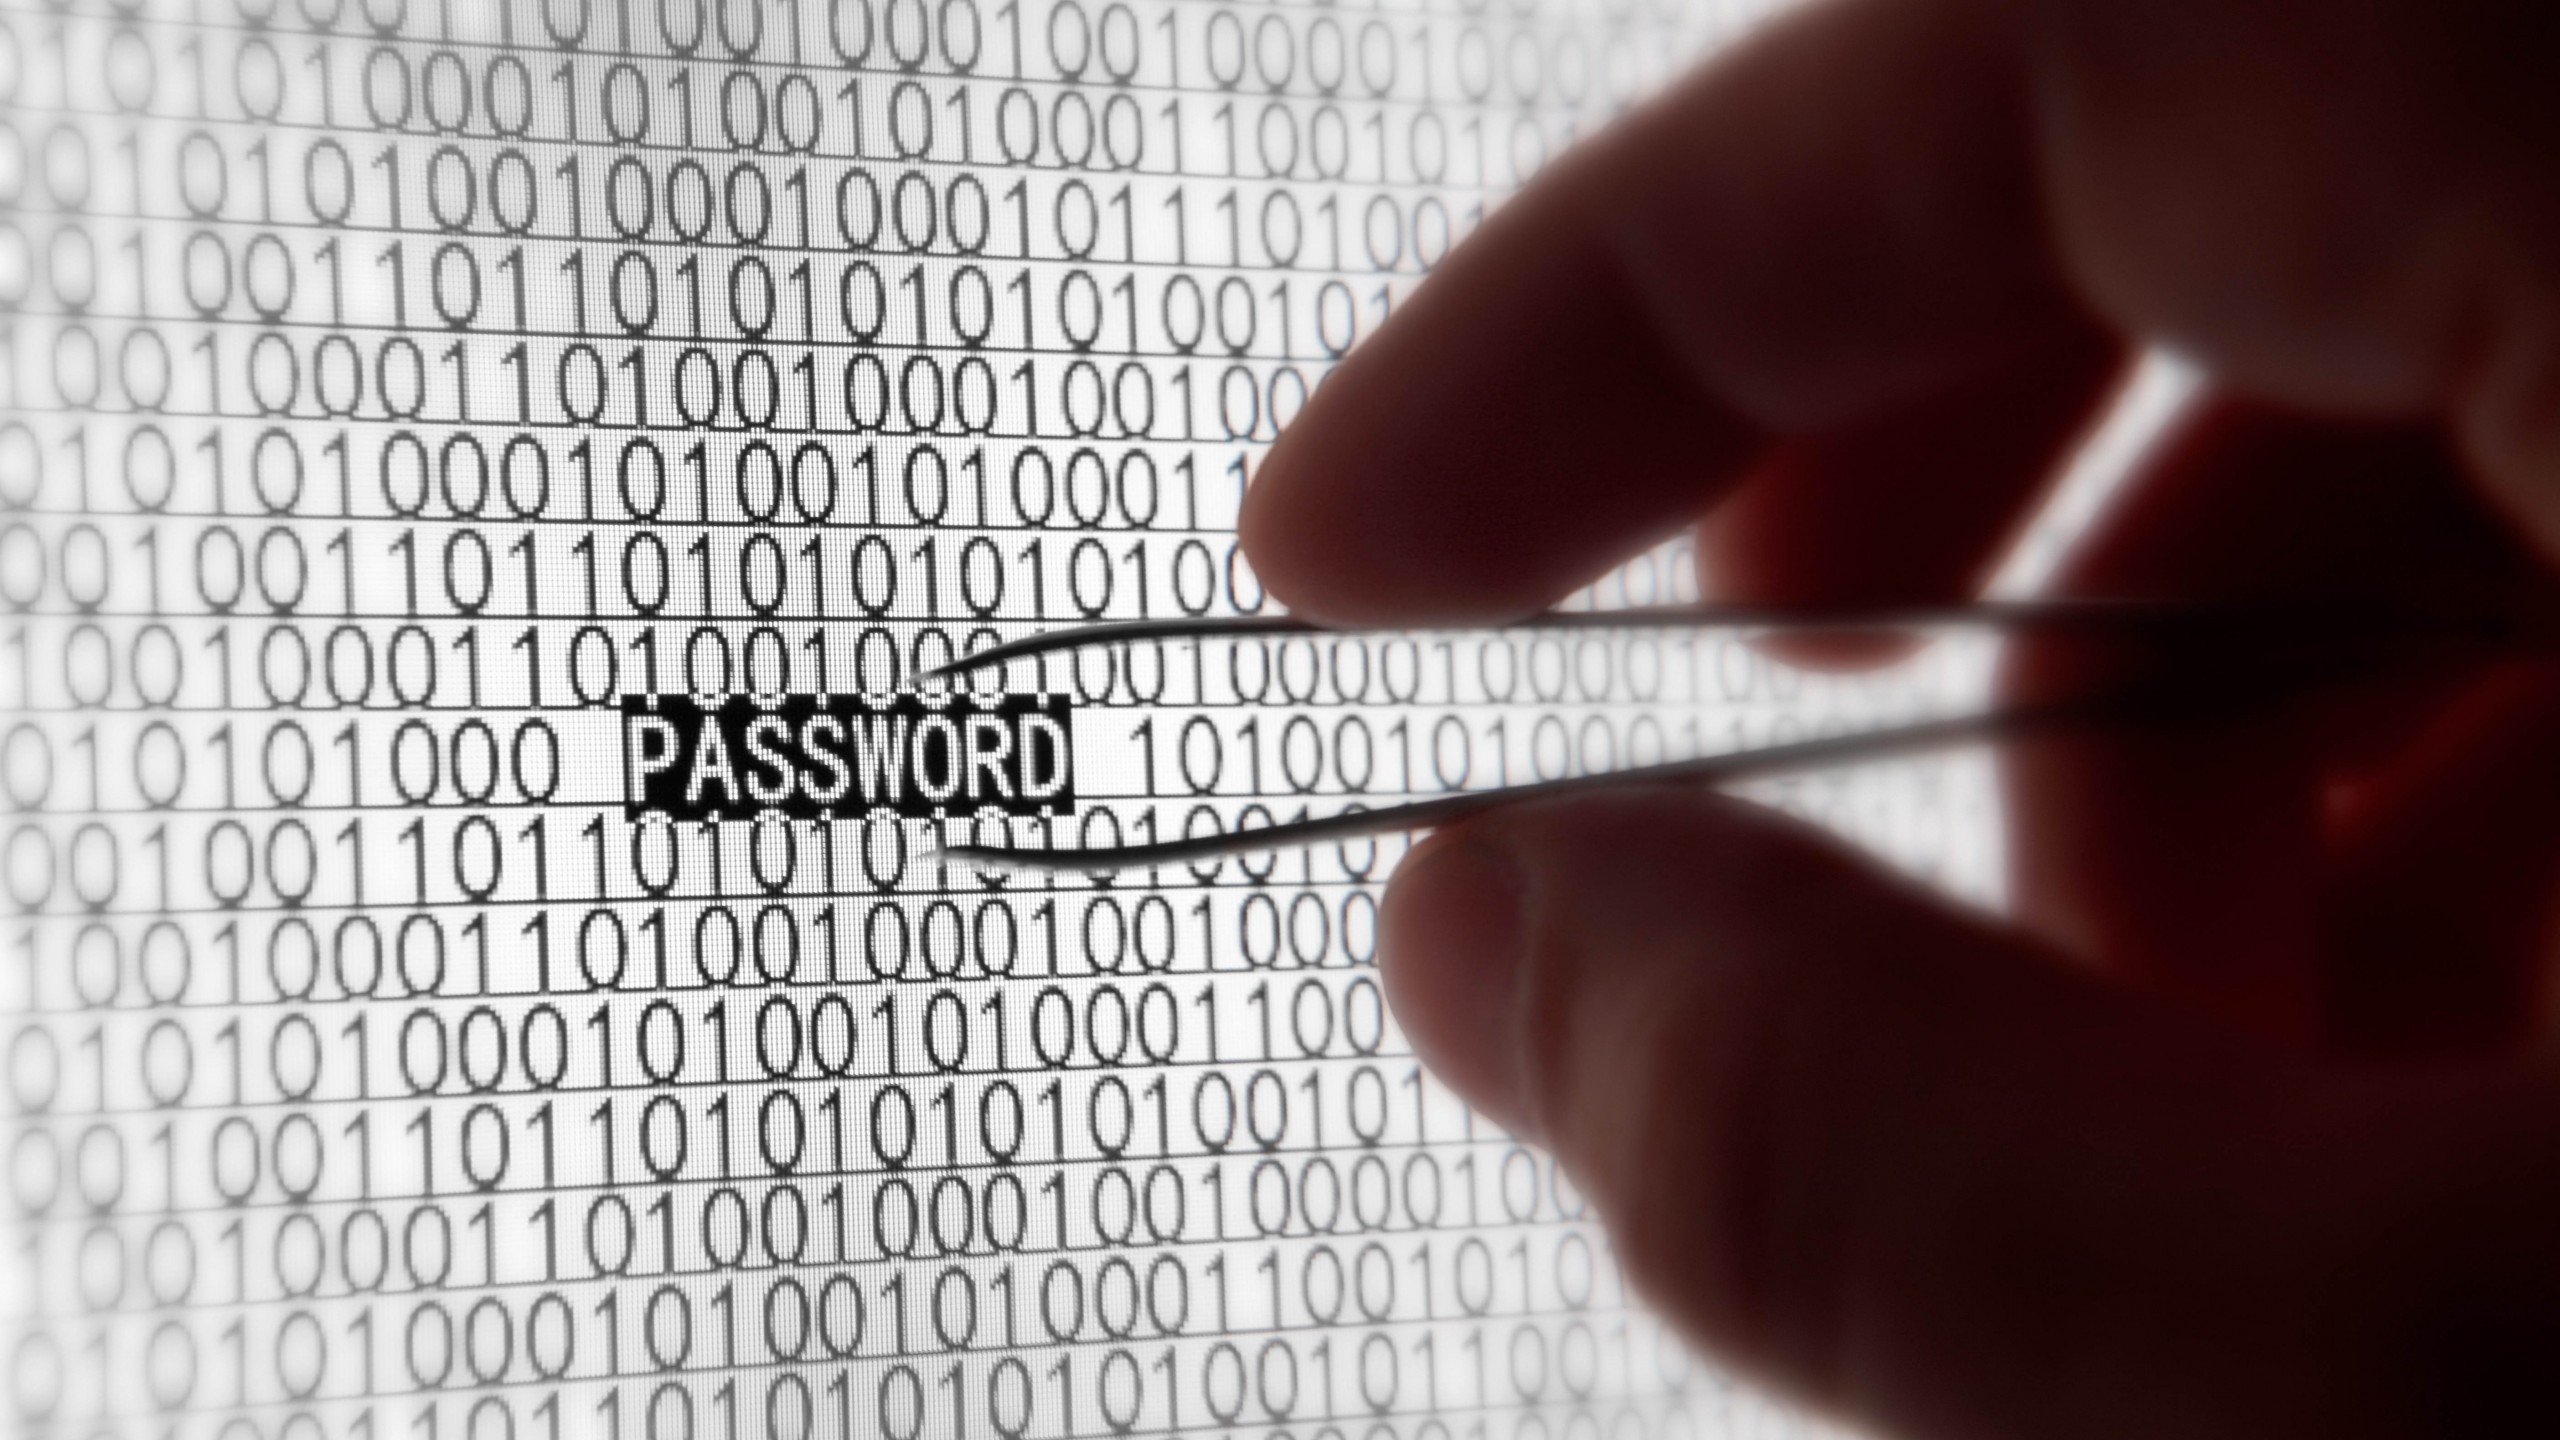 ganti password secara rutin